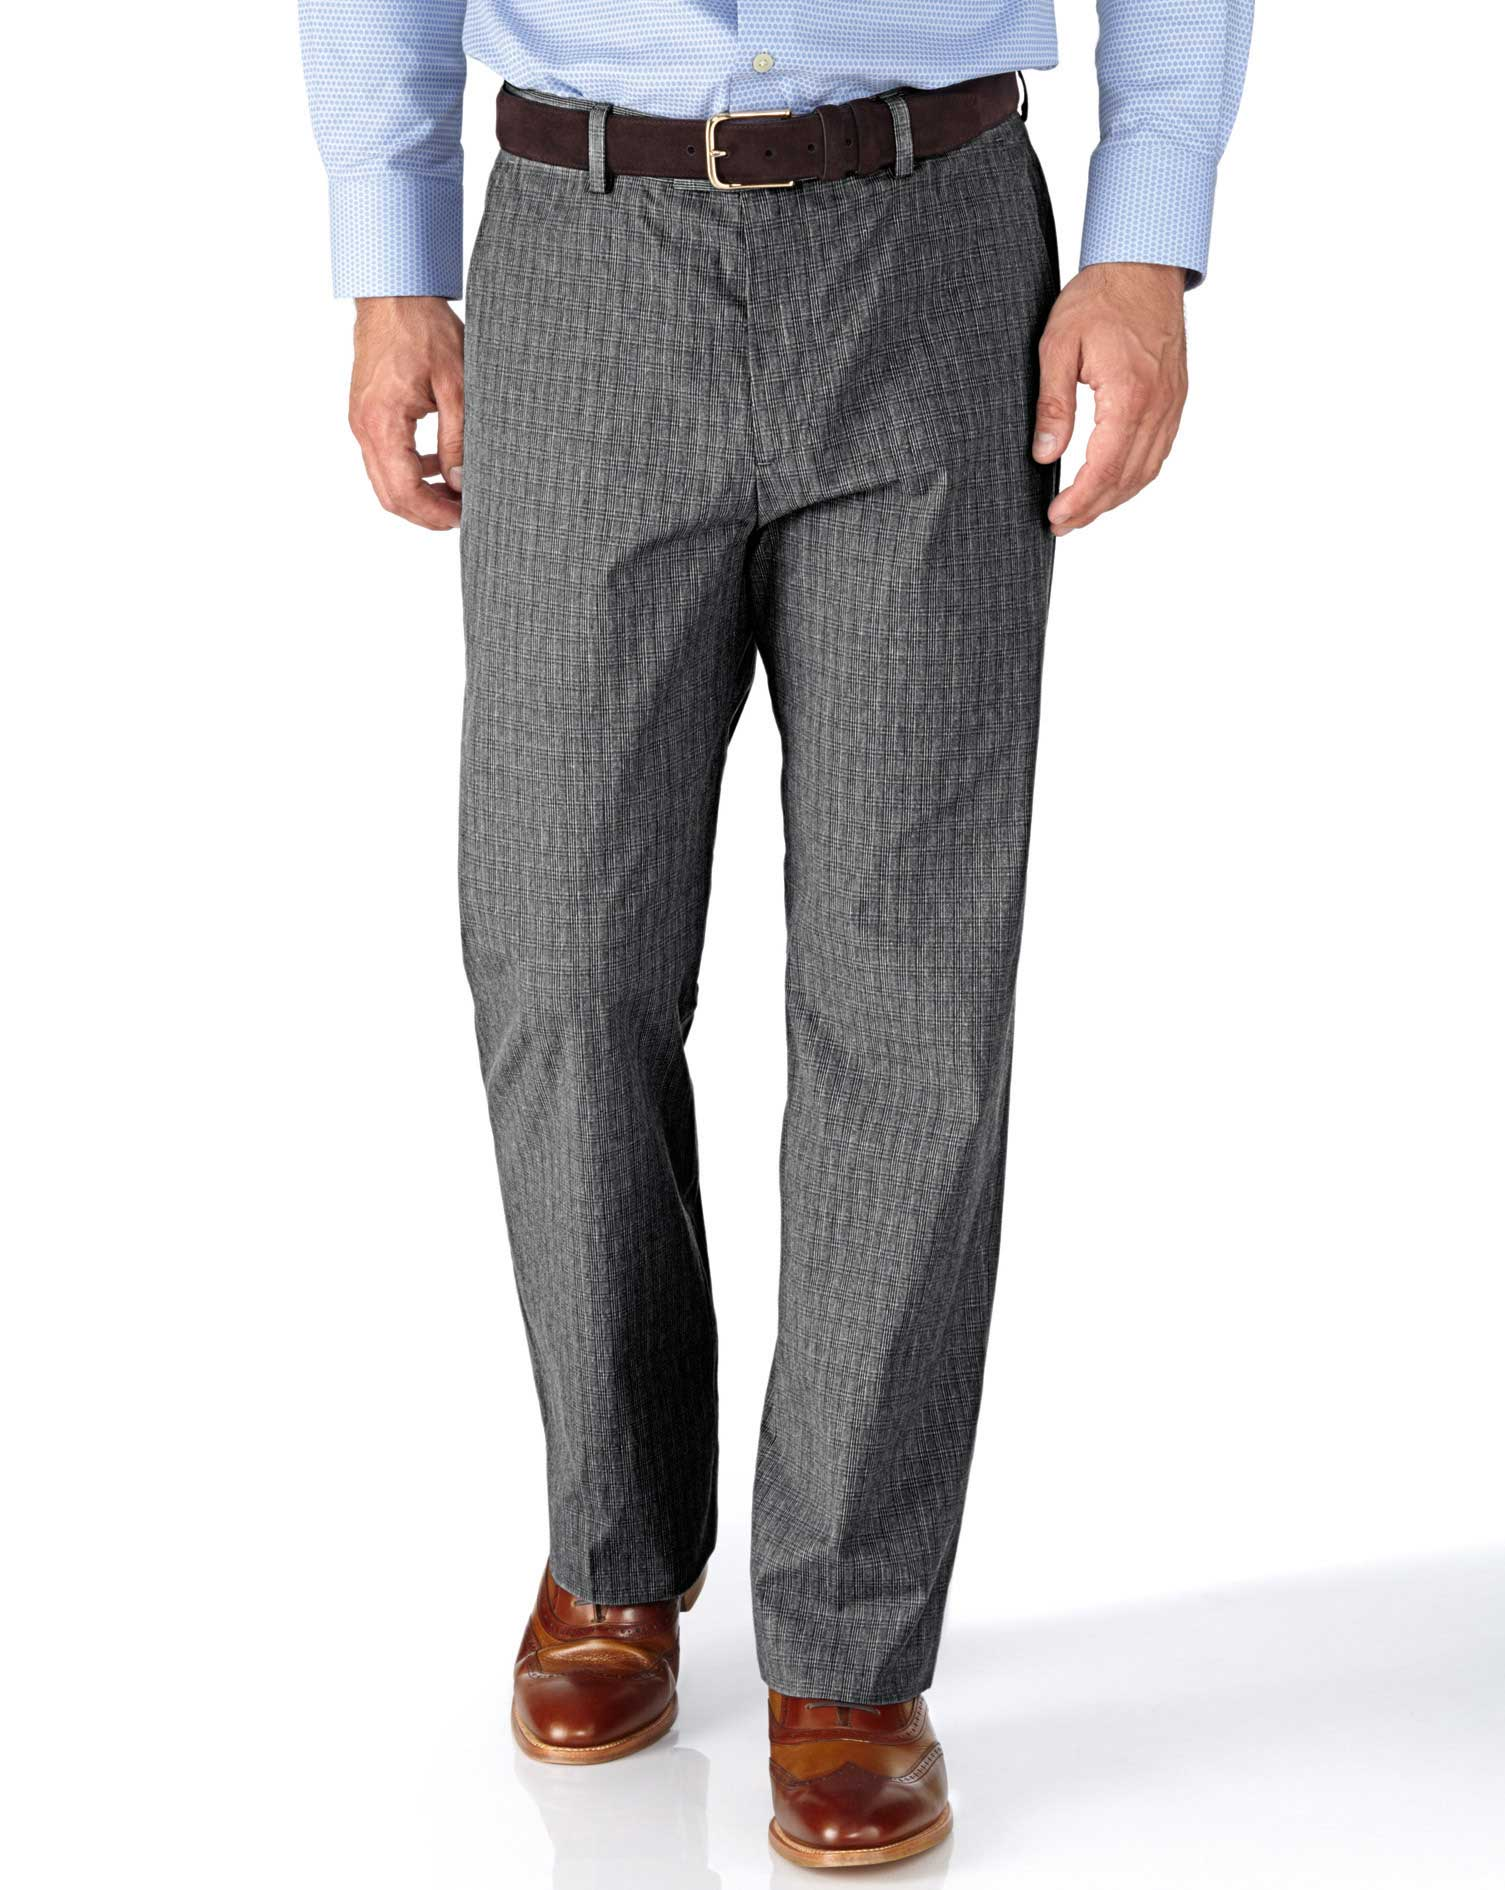 Grey Classic Fit Prince Of Wales Check Stretch Trousers Size W34 L34 by Charles Tyrwhitt